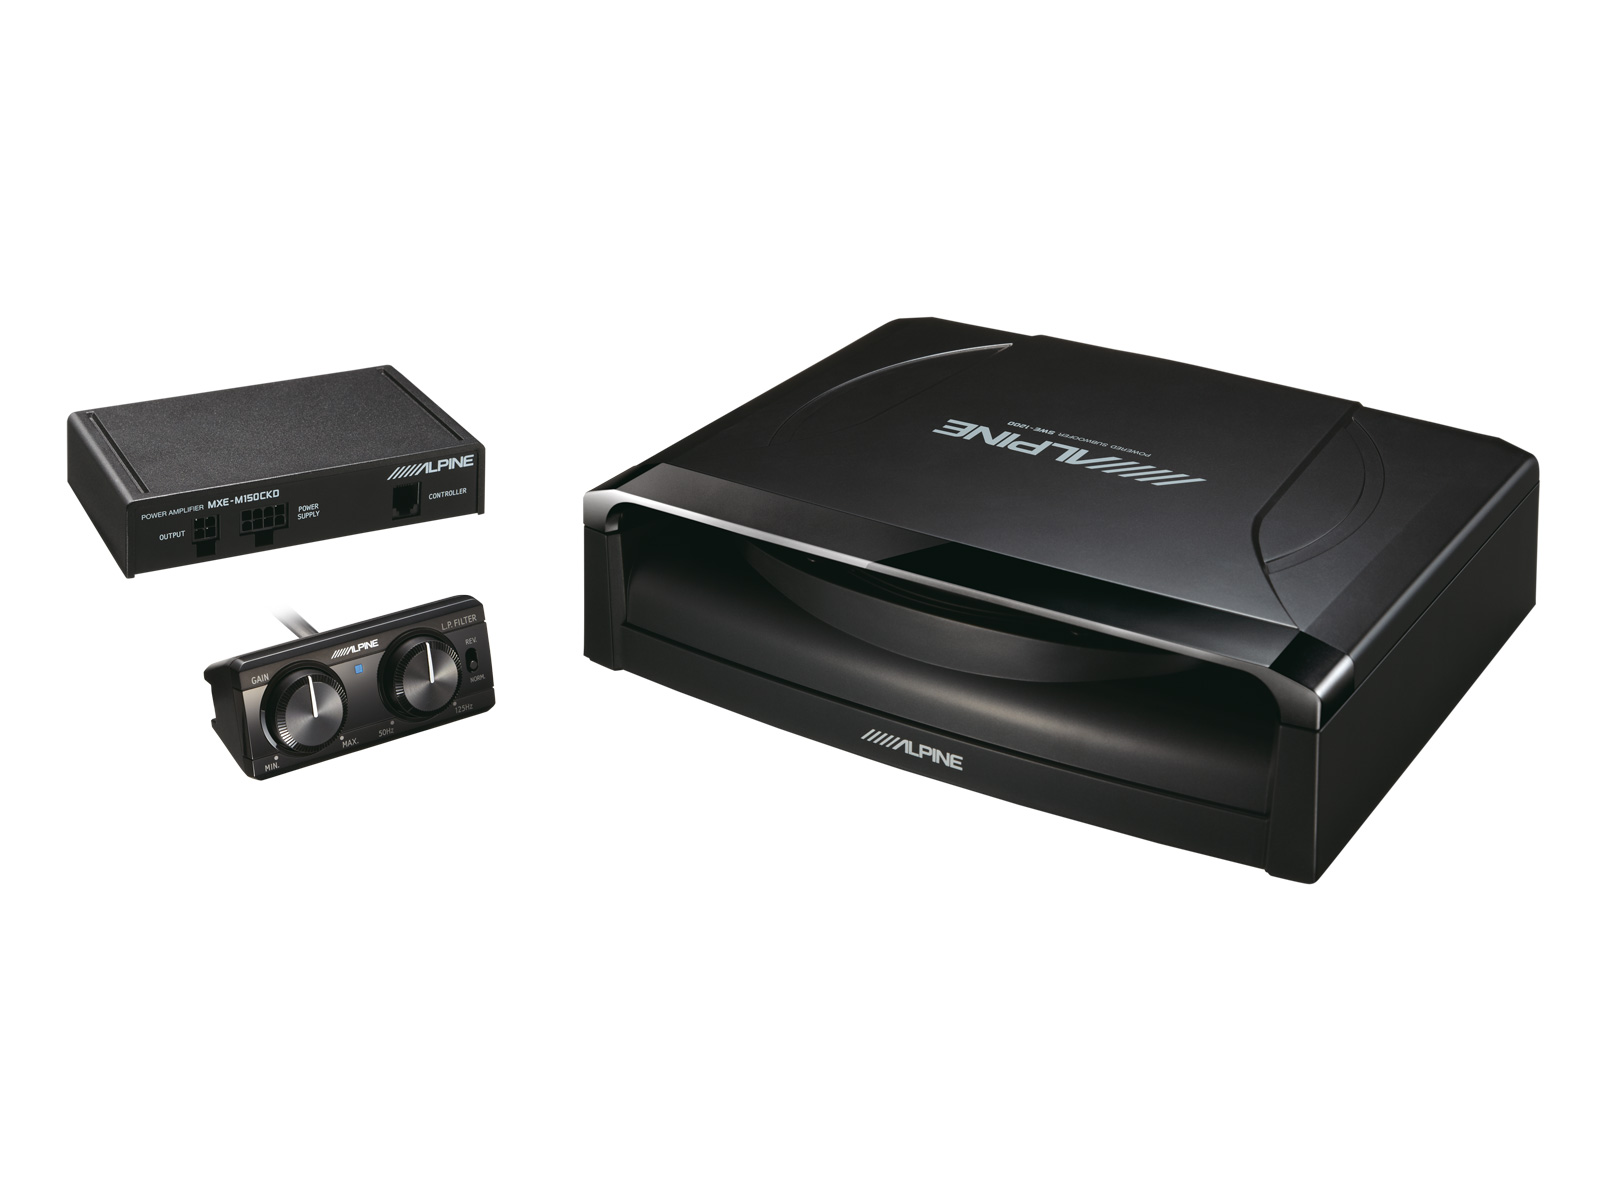 8 20cm Powered Subwoofer Alpine Swe 1200 12quot 1500w Active Car Sub Bass Box Wiring Kit And